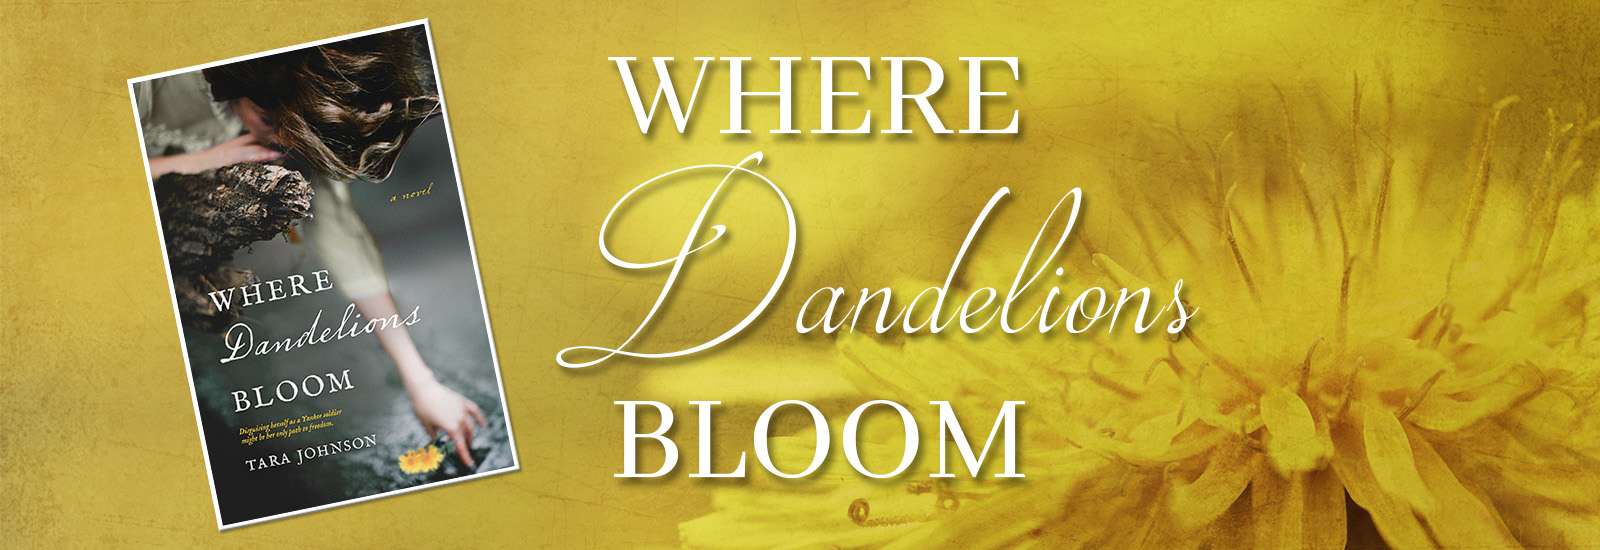 Where Dandelions Bloom by Tara Johnson